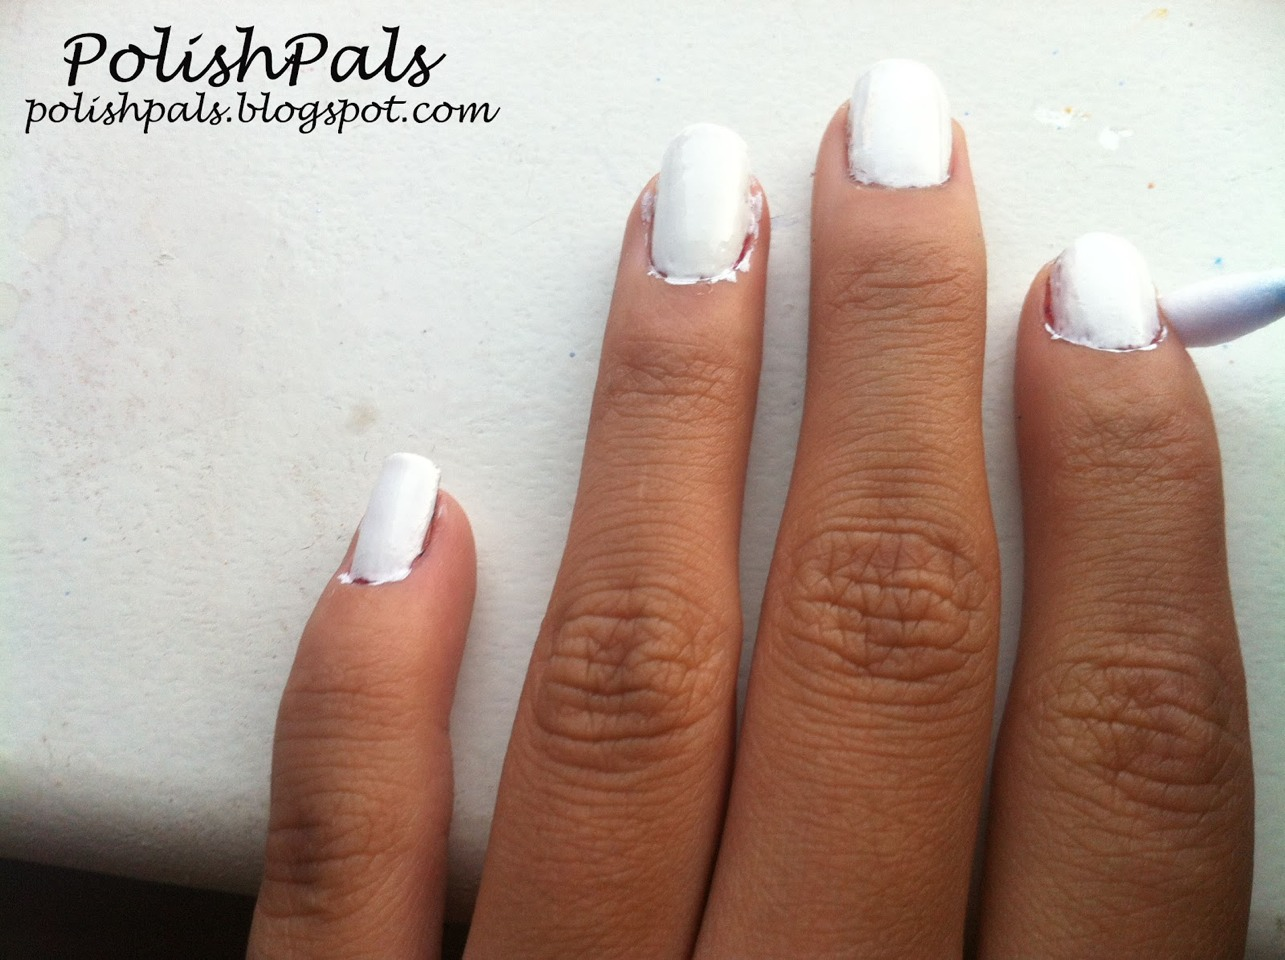 Dip and flat head brush and clean around the nails! This will make it easier to manoeuvre around the nails! If you don't have a brush, use a que tip!